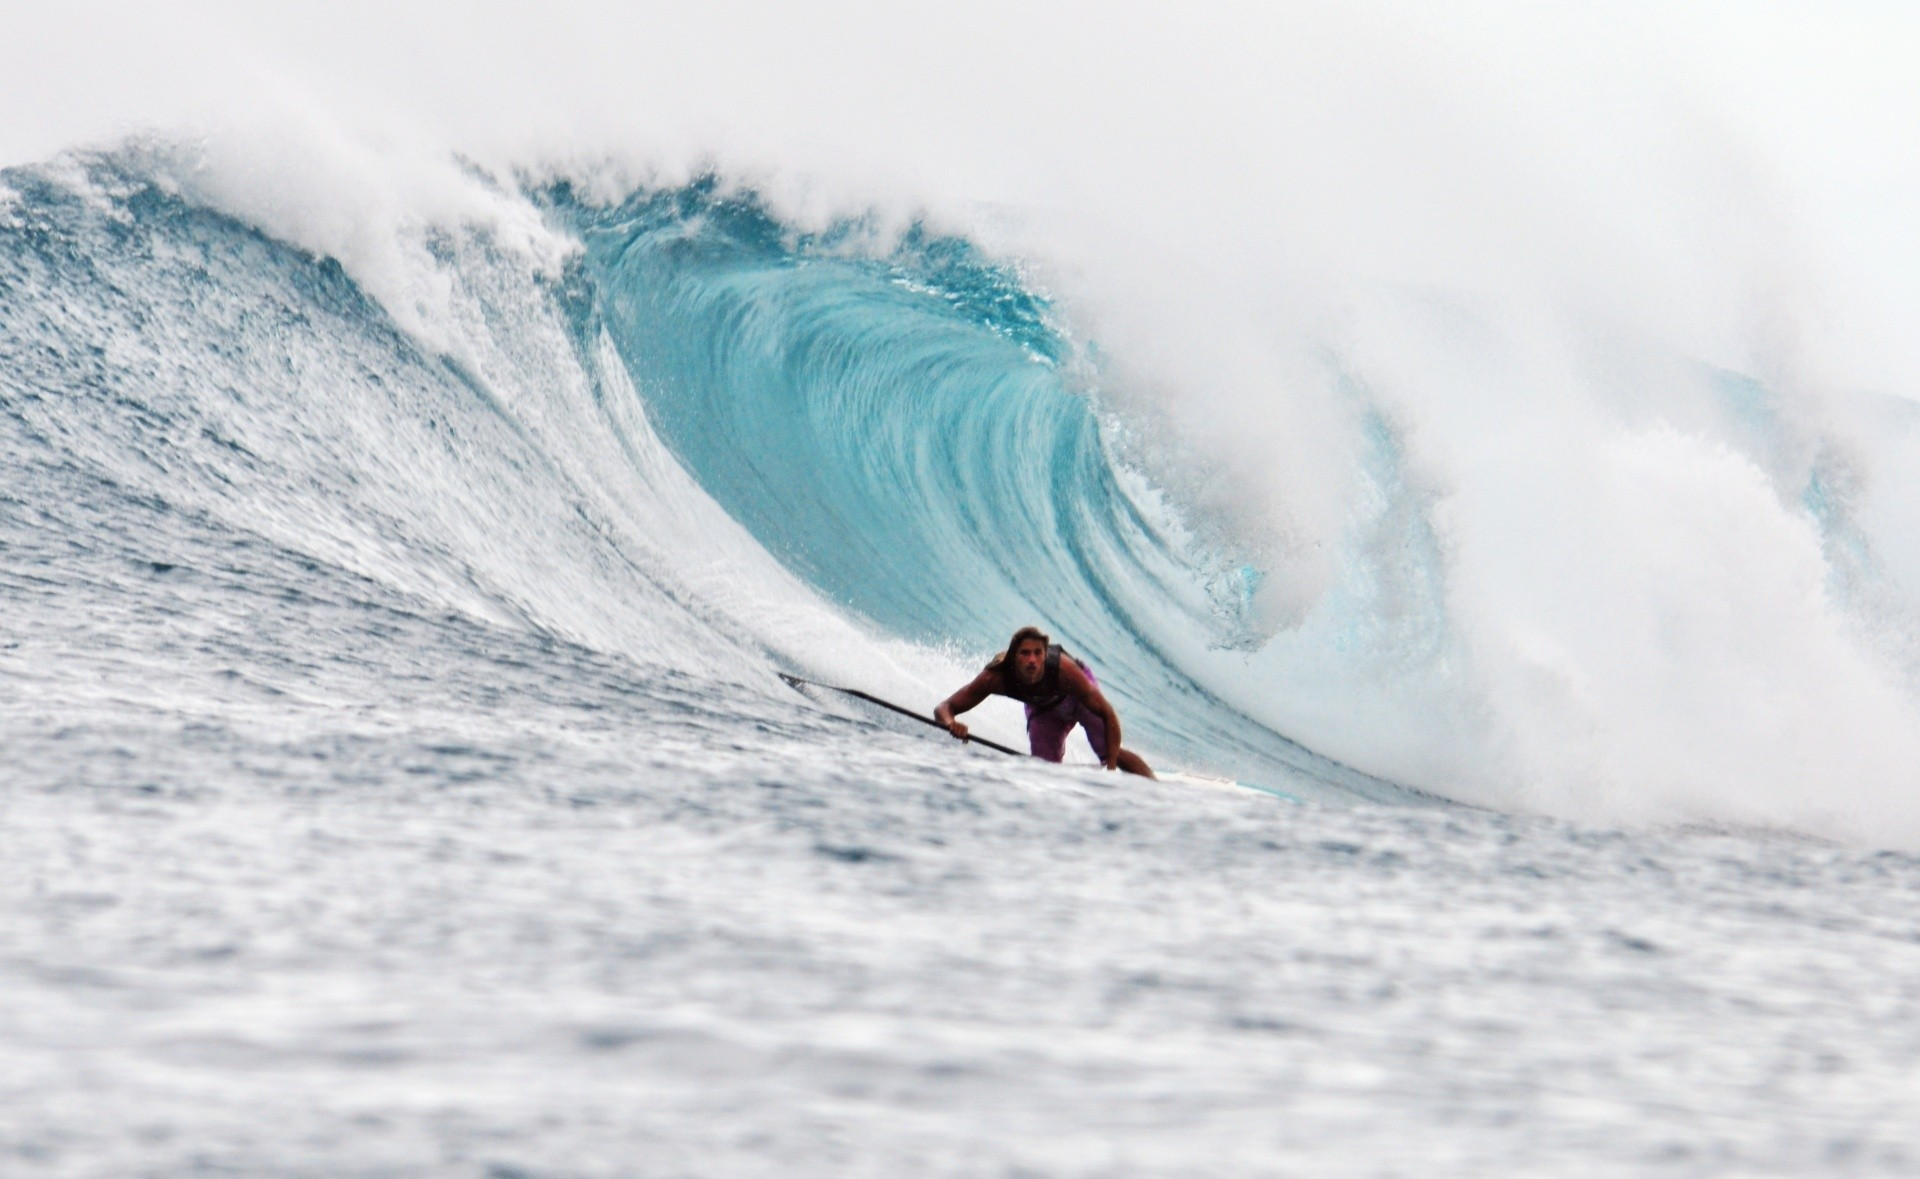 planet-surf's photo of Bank Vaults